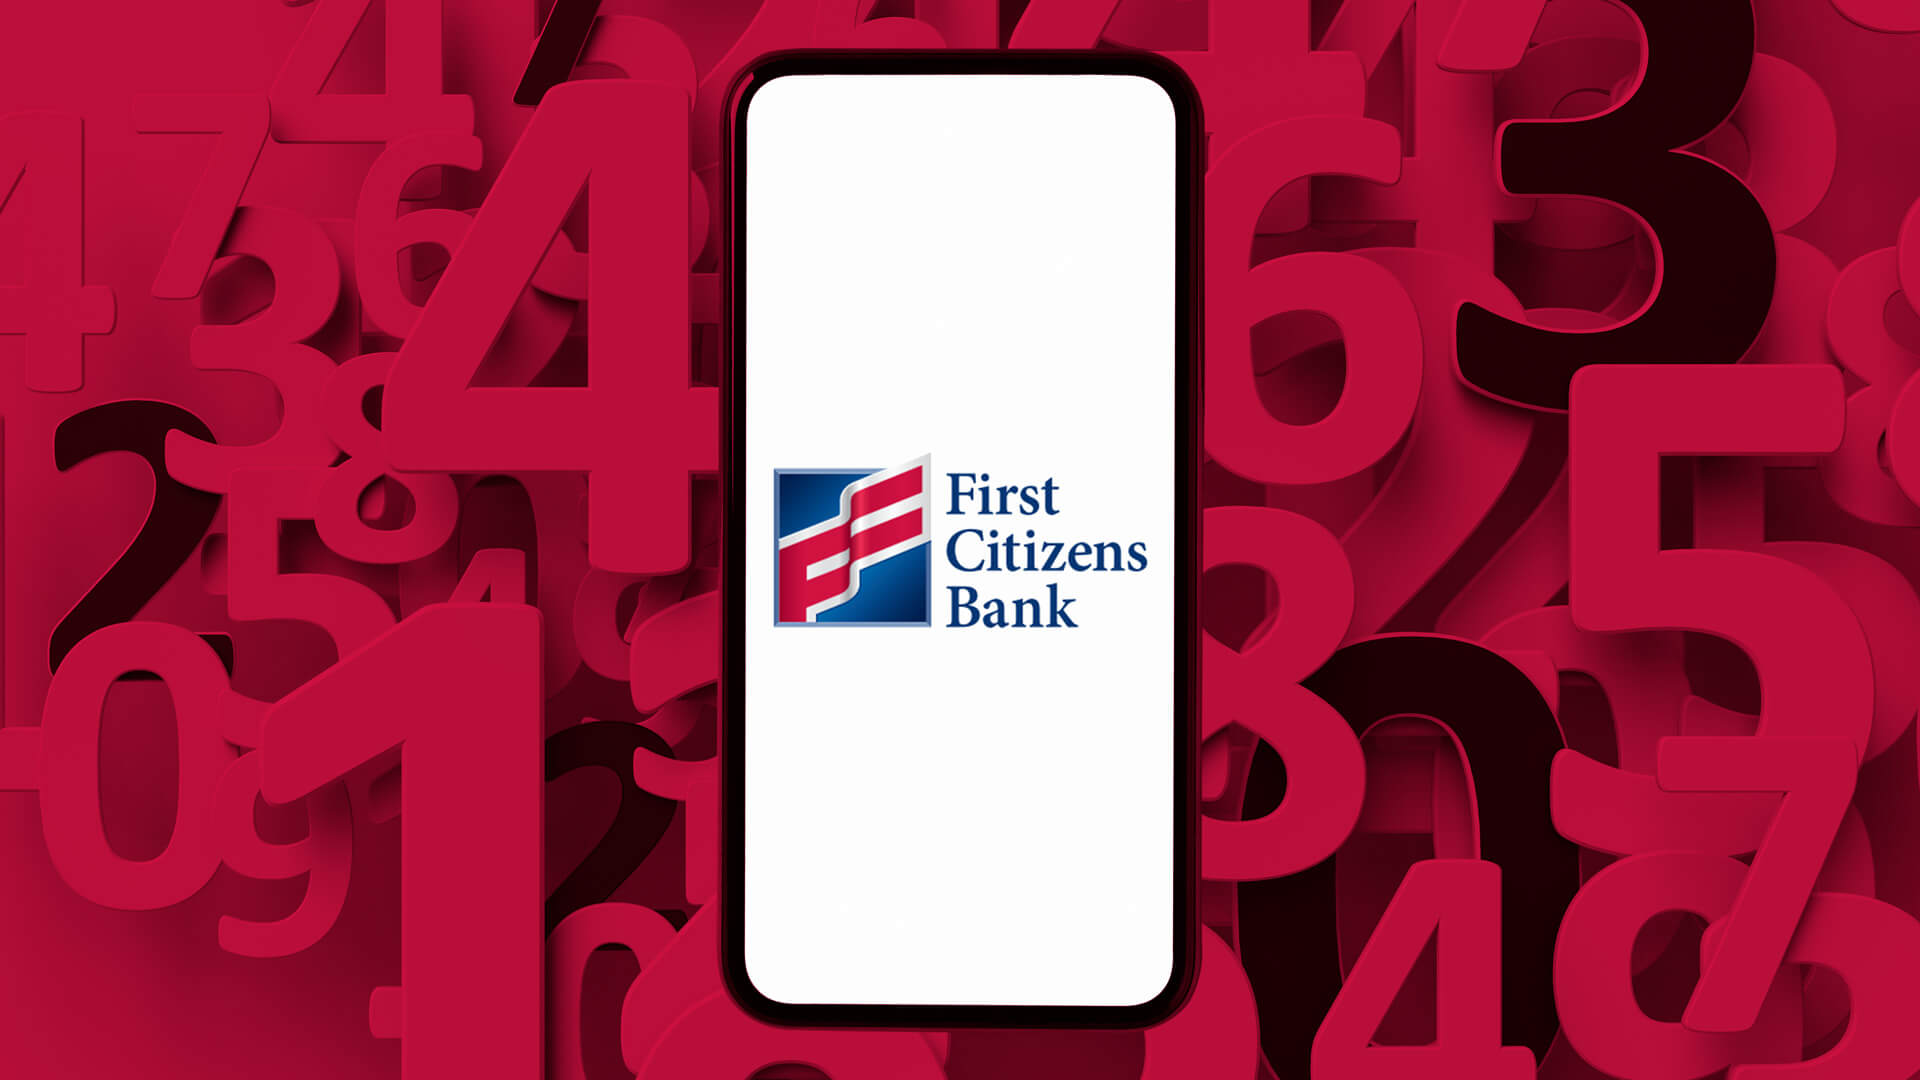 Here's Your First Citizens Bank Routing Number | GOBankingRates